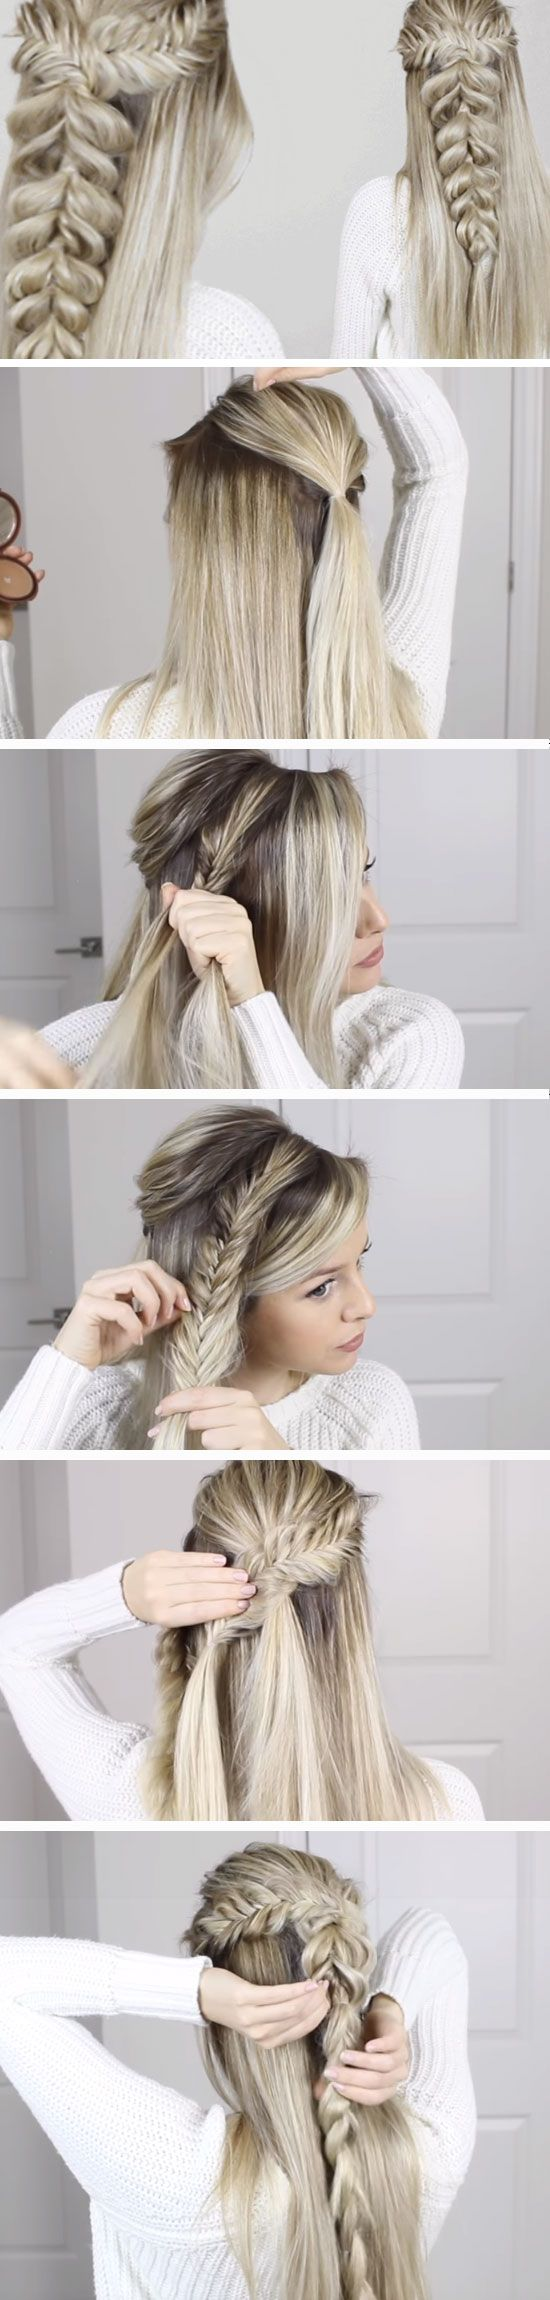 Easy diy wedding hairstyles for long hair hair pinterest haar